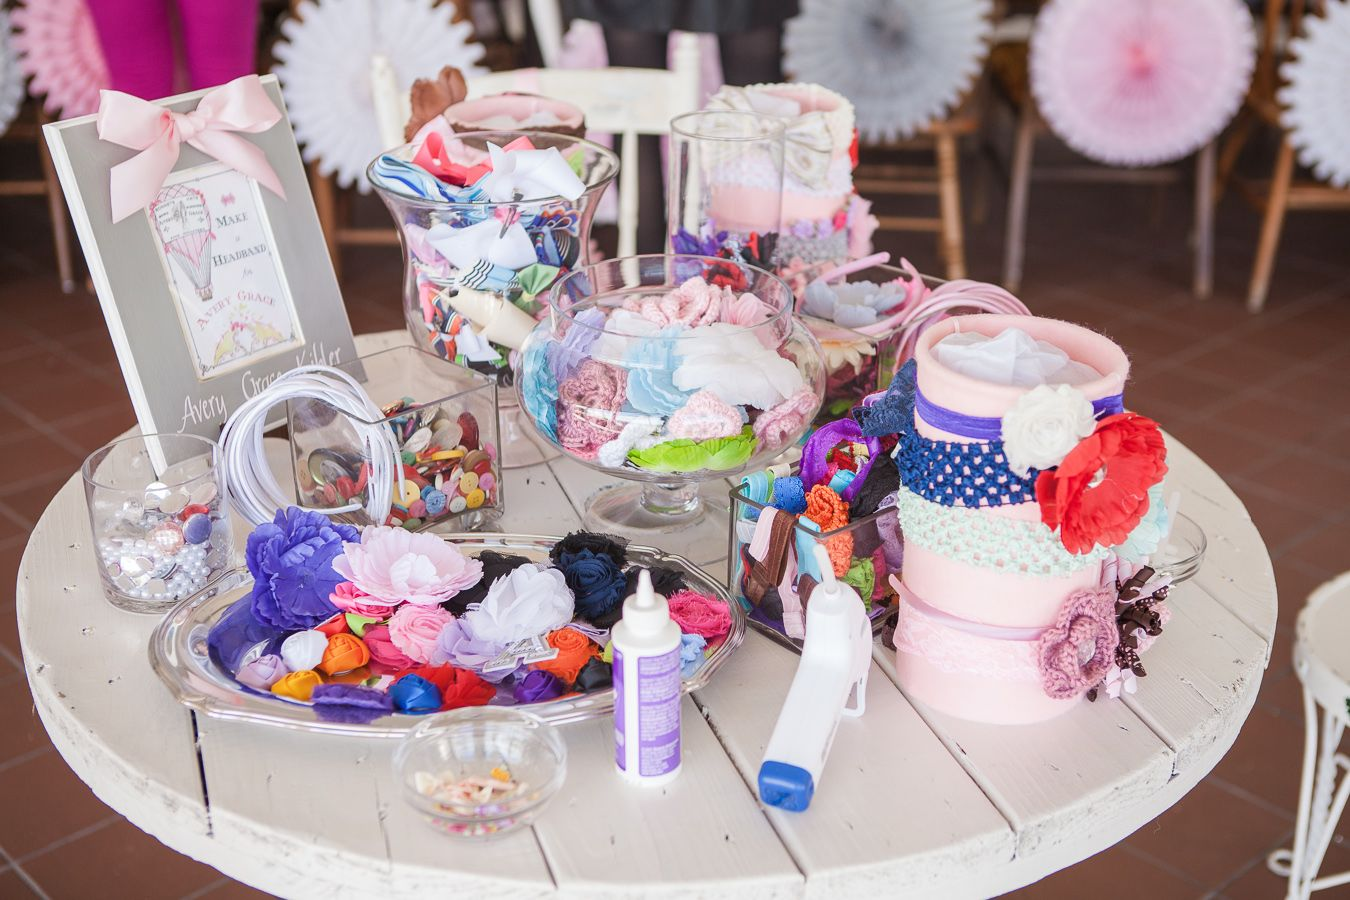 Baby Shower Headband Making Station - Project Nursery